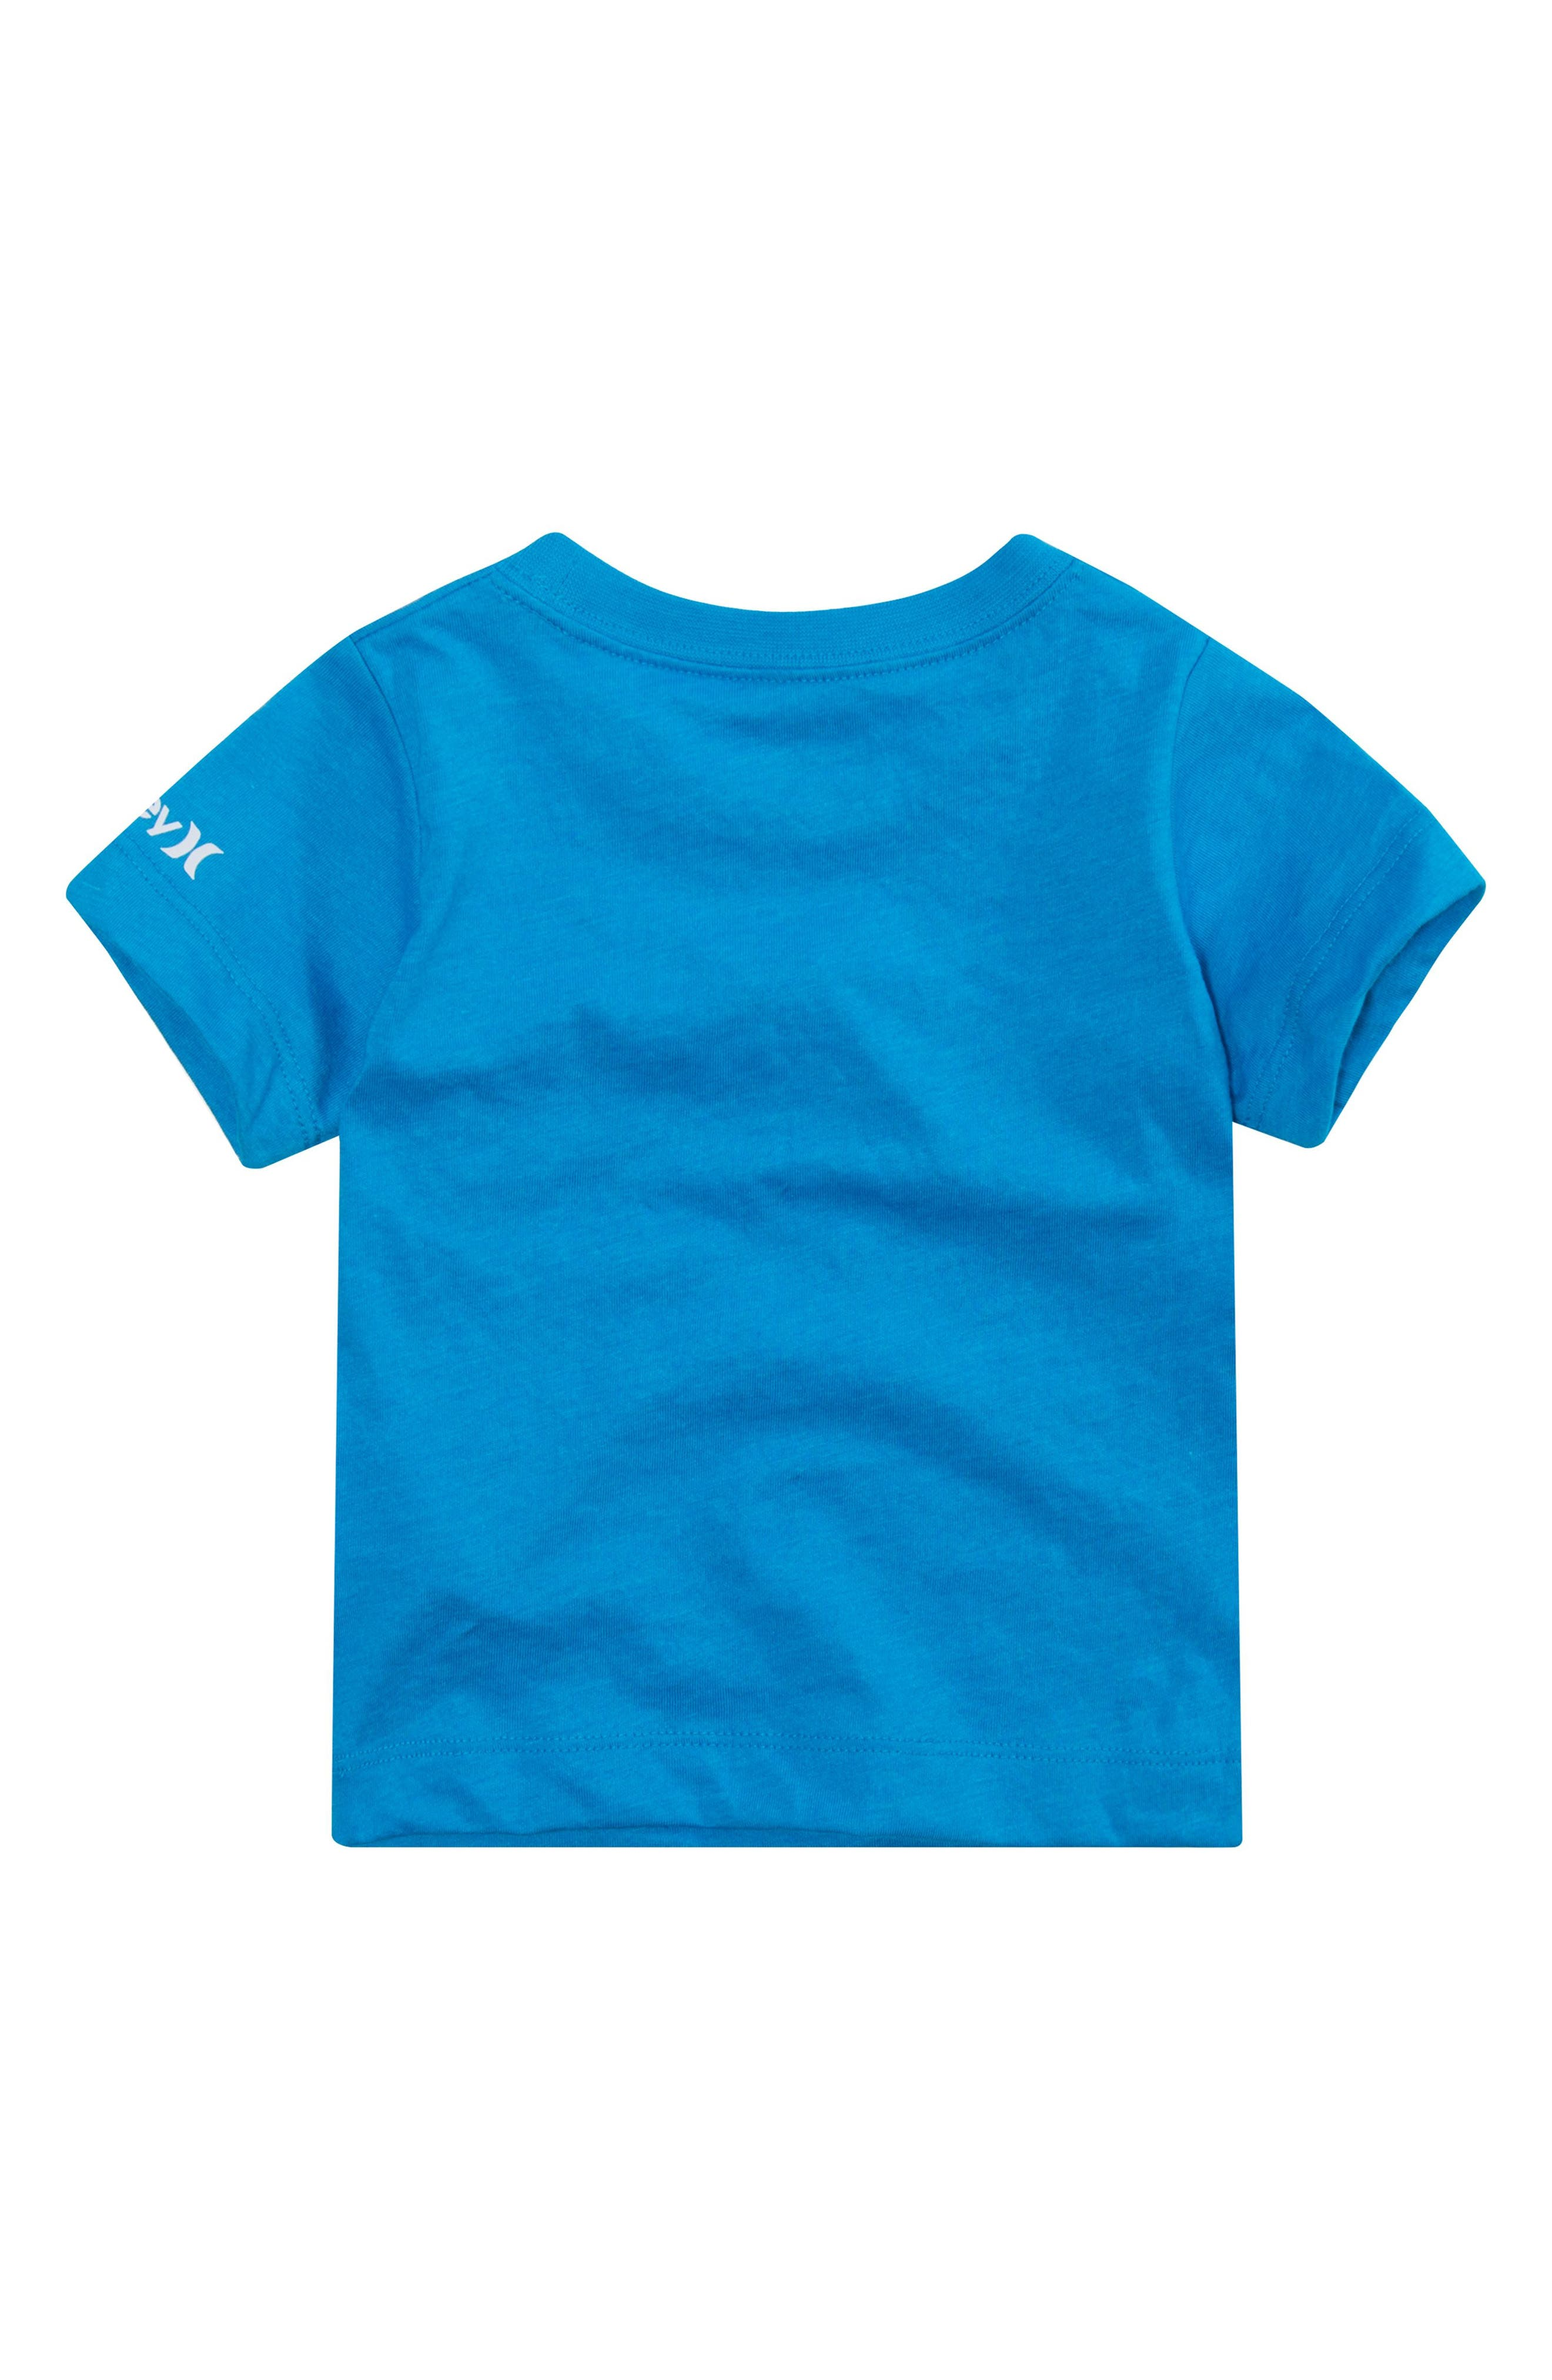 Surf & Enjoy Graphic T-Shirt,                             Alternate thumbnail 2, color,                             Blue Lagoon Heather